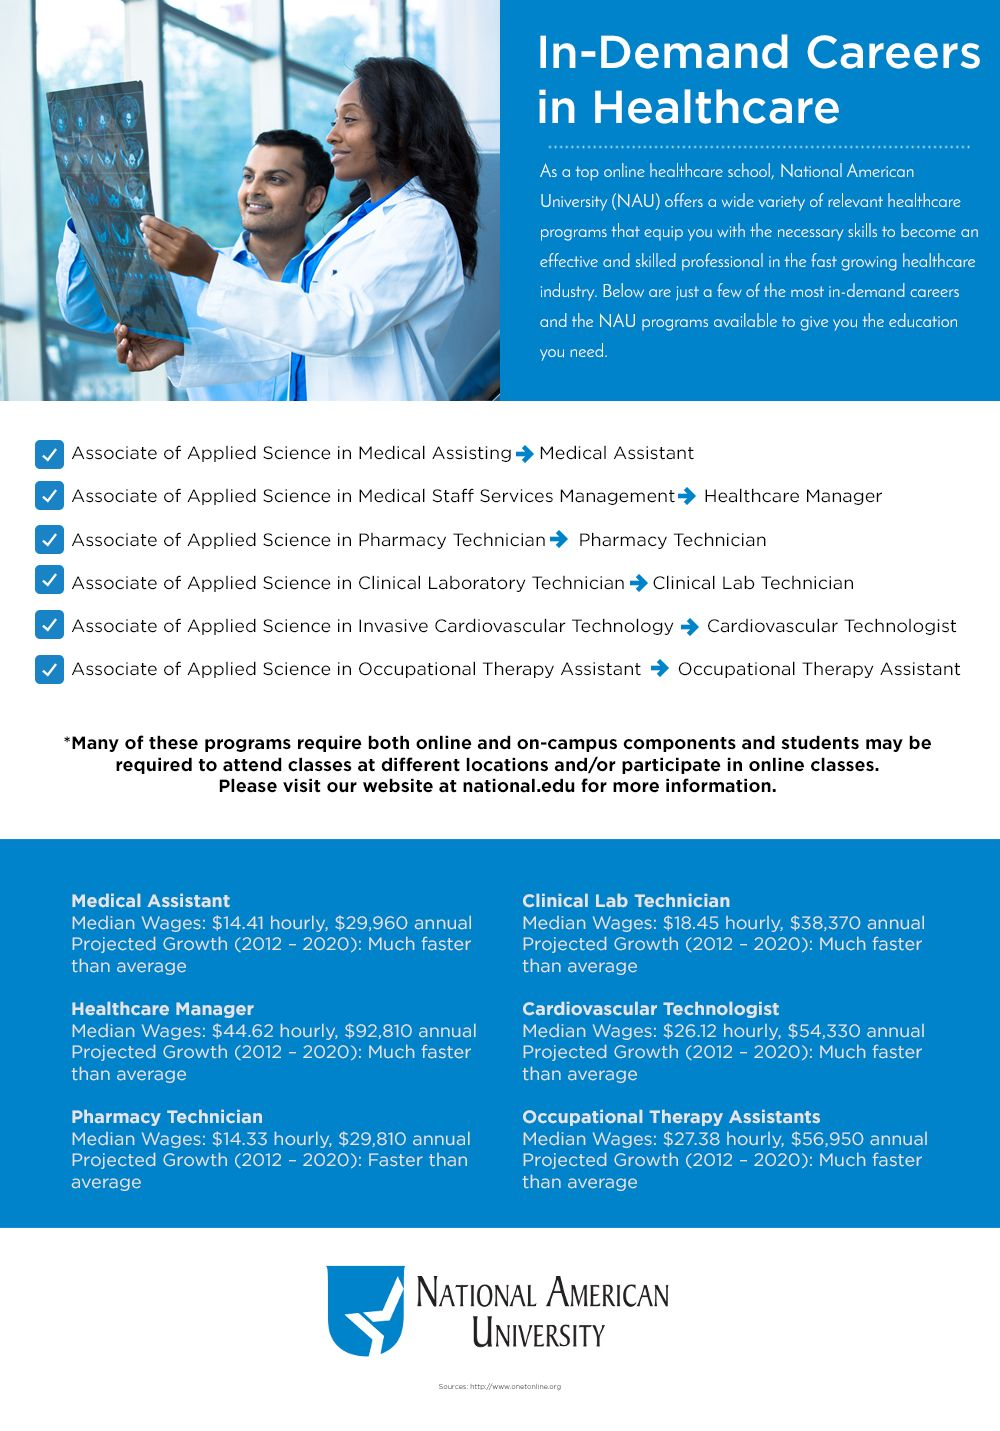 Indemand careers in healthcare an infographic